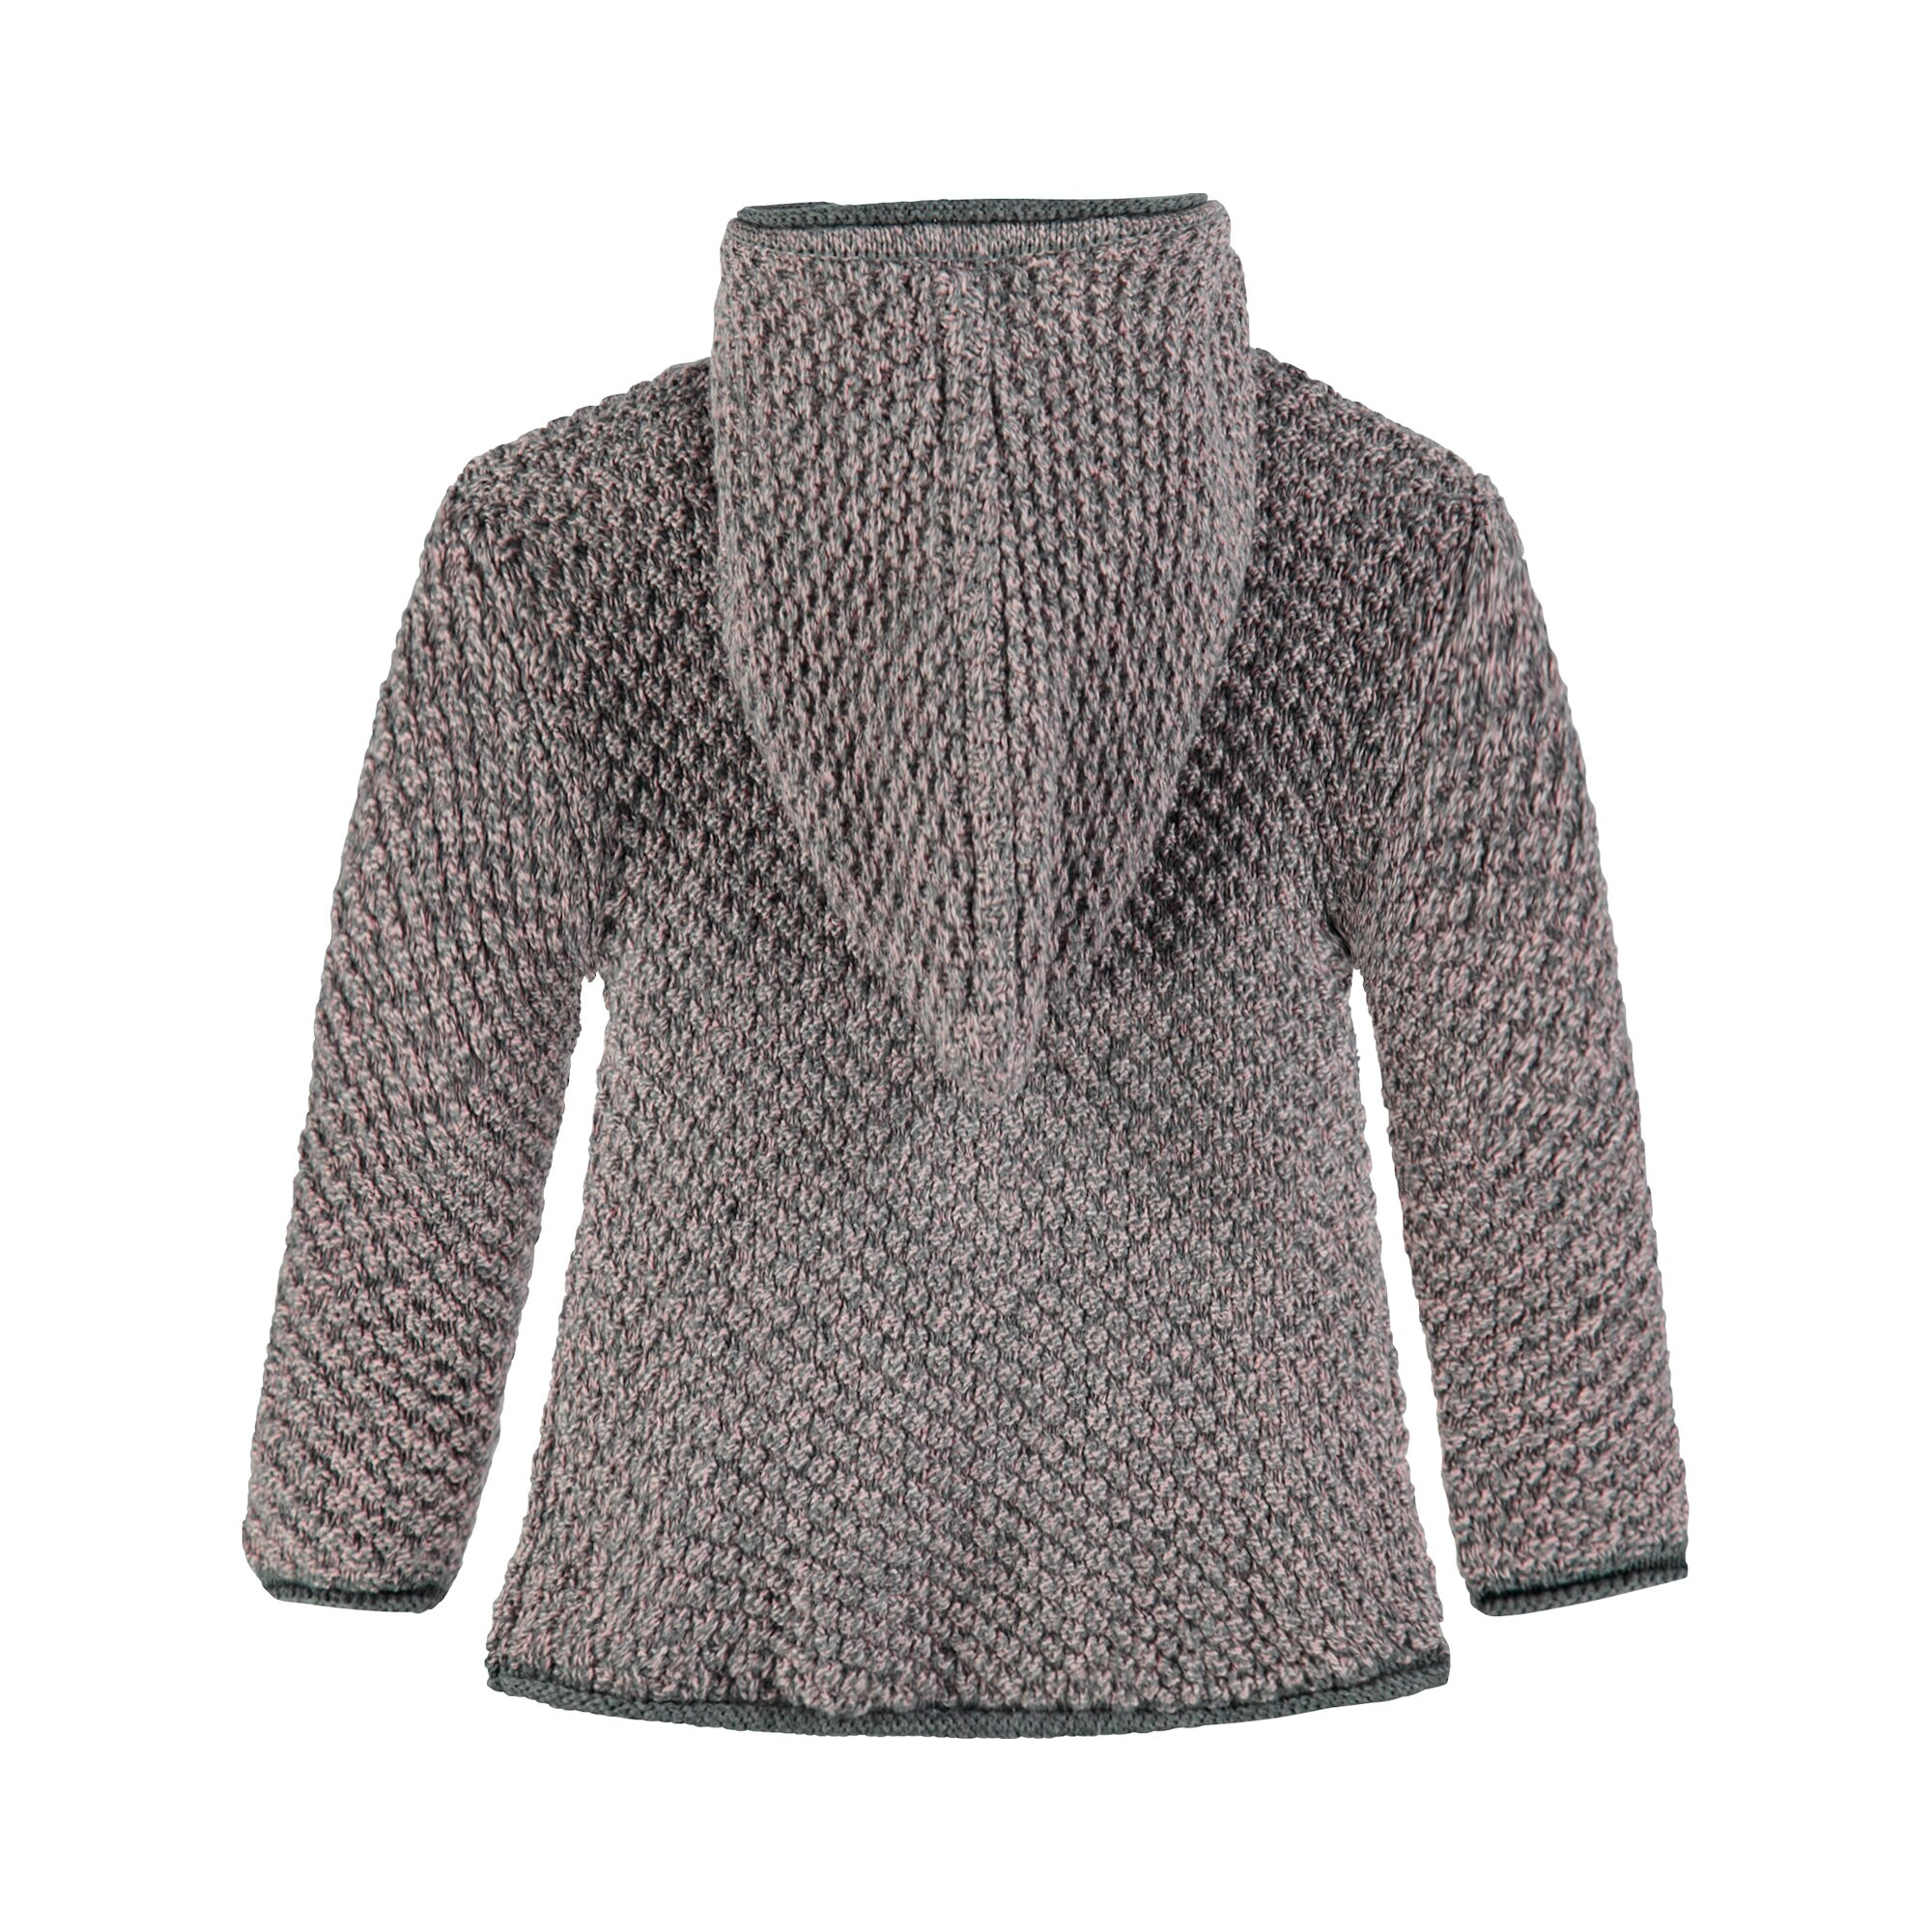 bellybutton-strickjacke-mit-kapuze